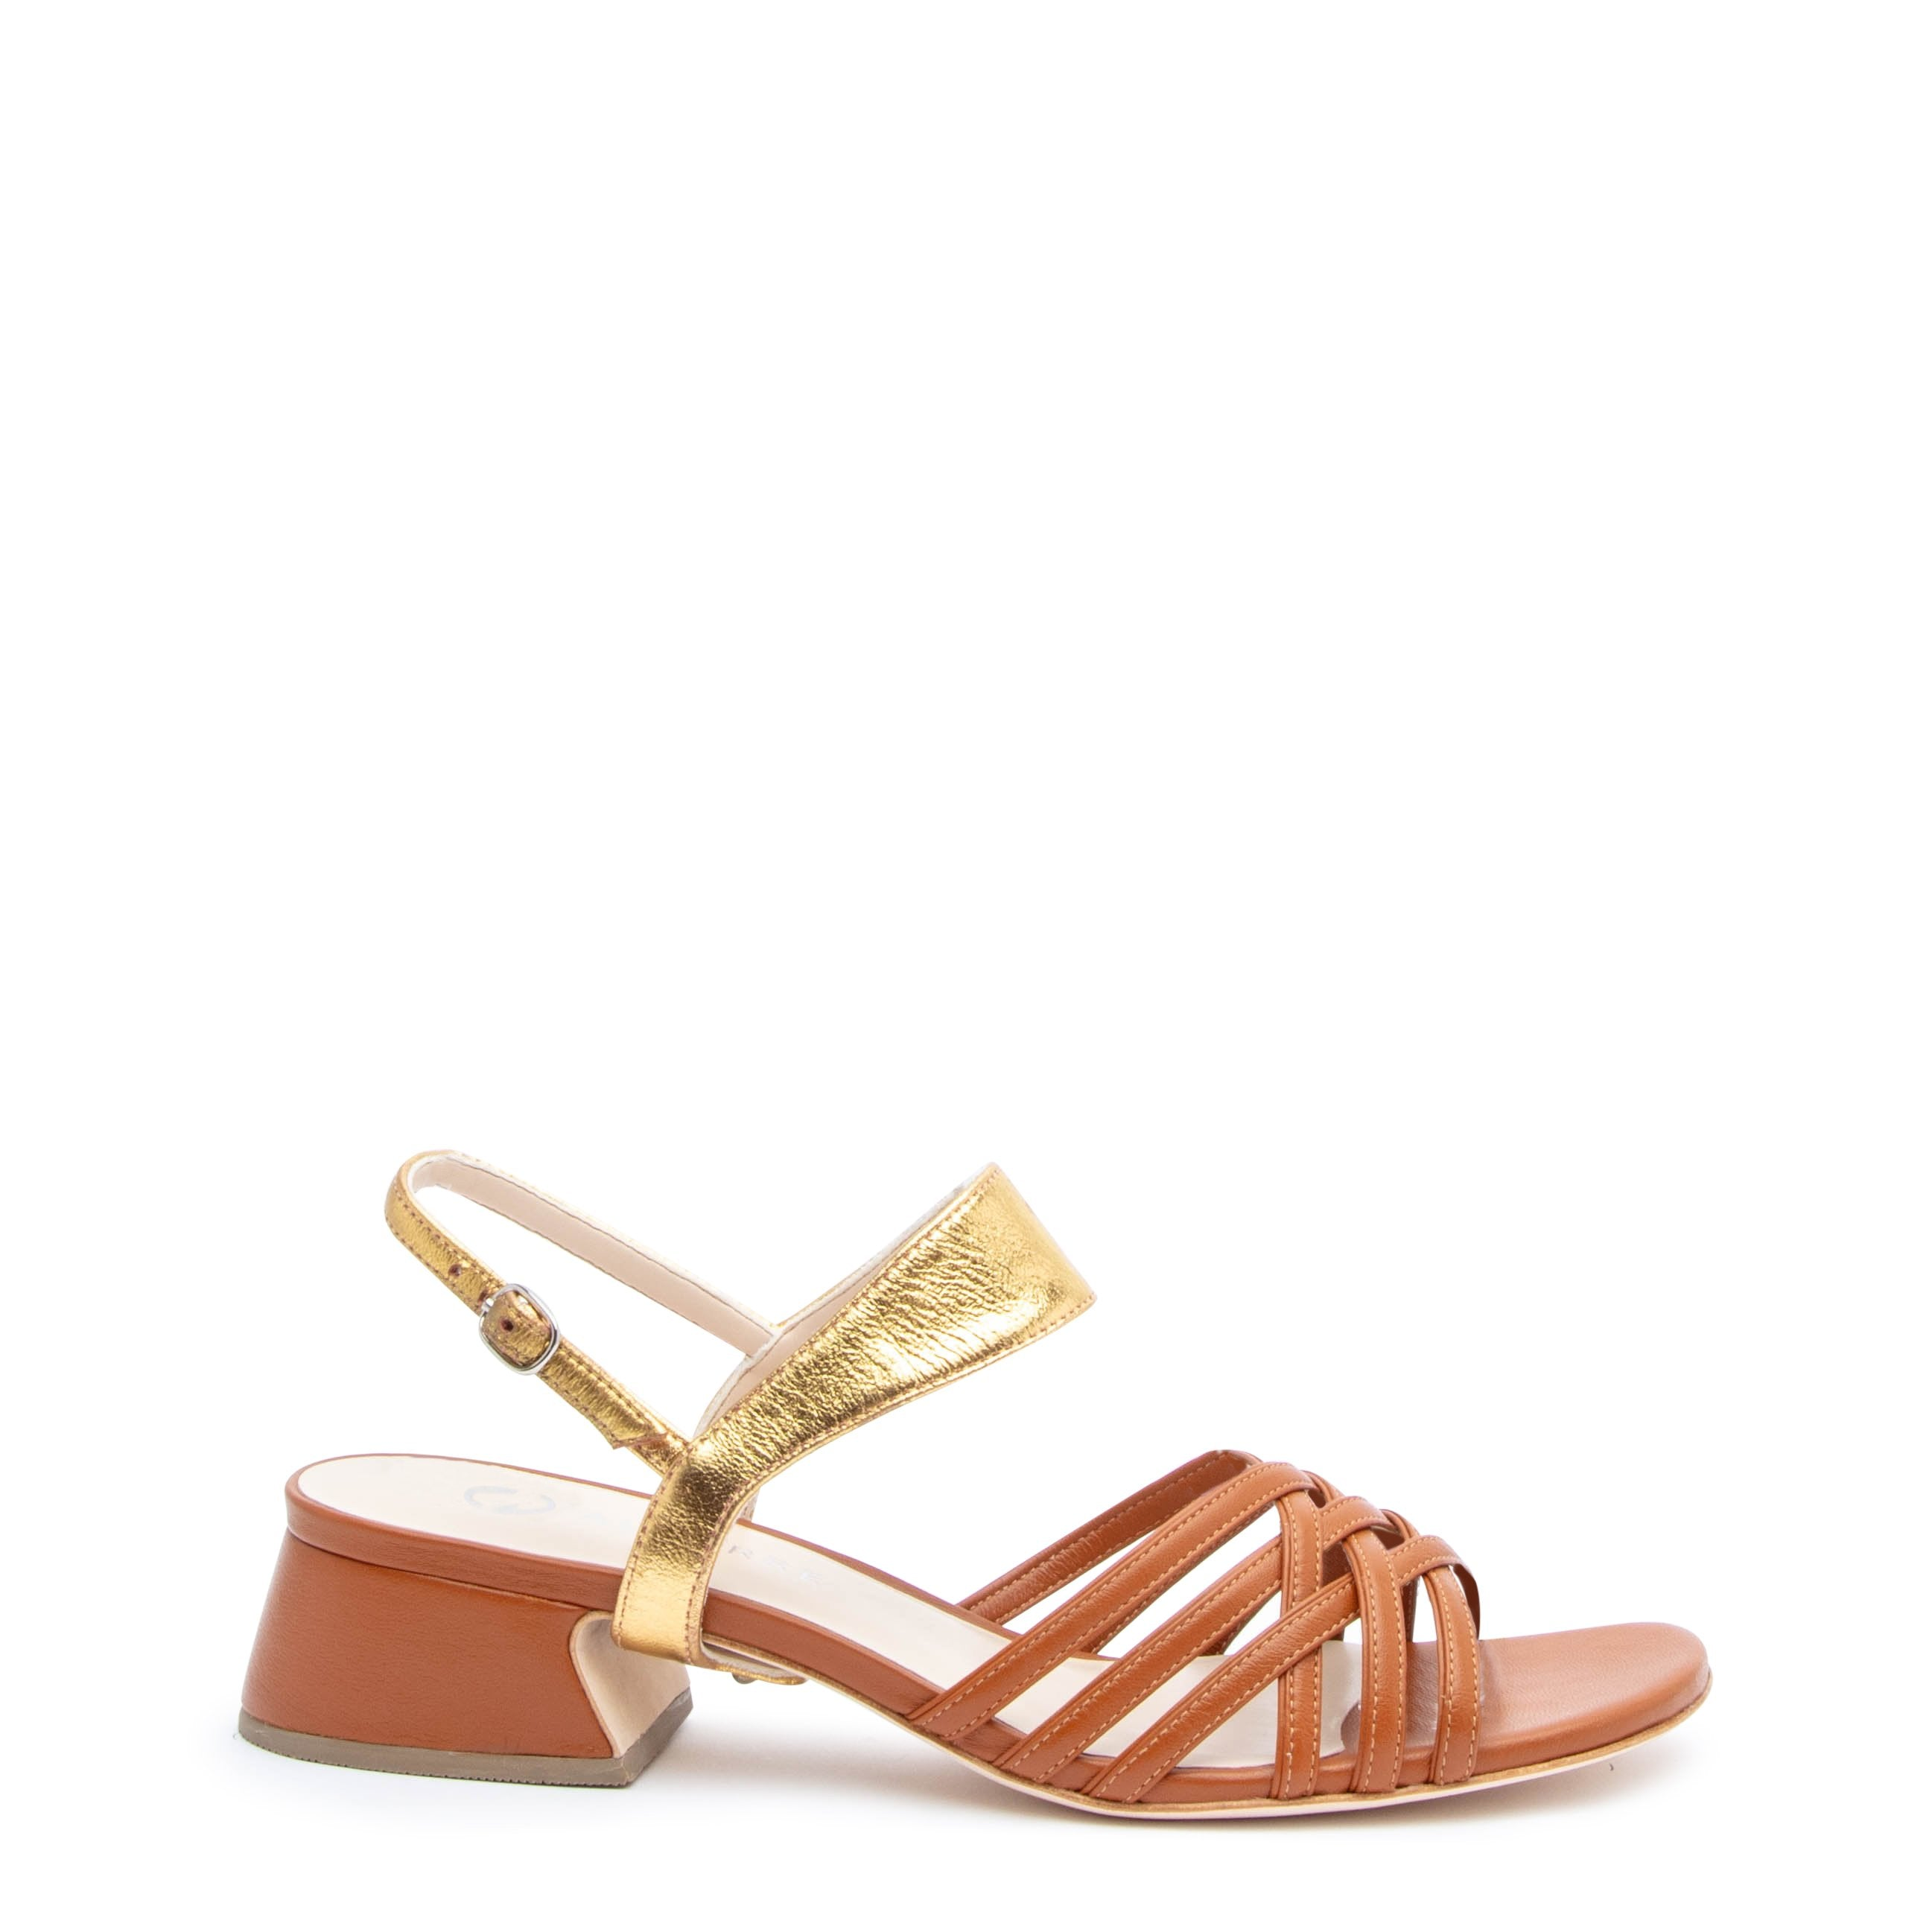 Cognac Bell Sandal + Gold Elsie Customized Sandals | Alterre Interchangeable Sandals - Sustainable Footwear & Ethical Shoes